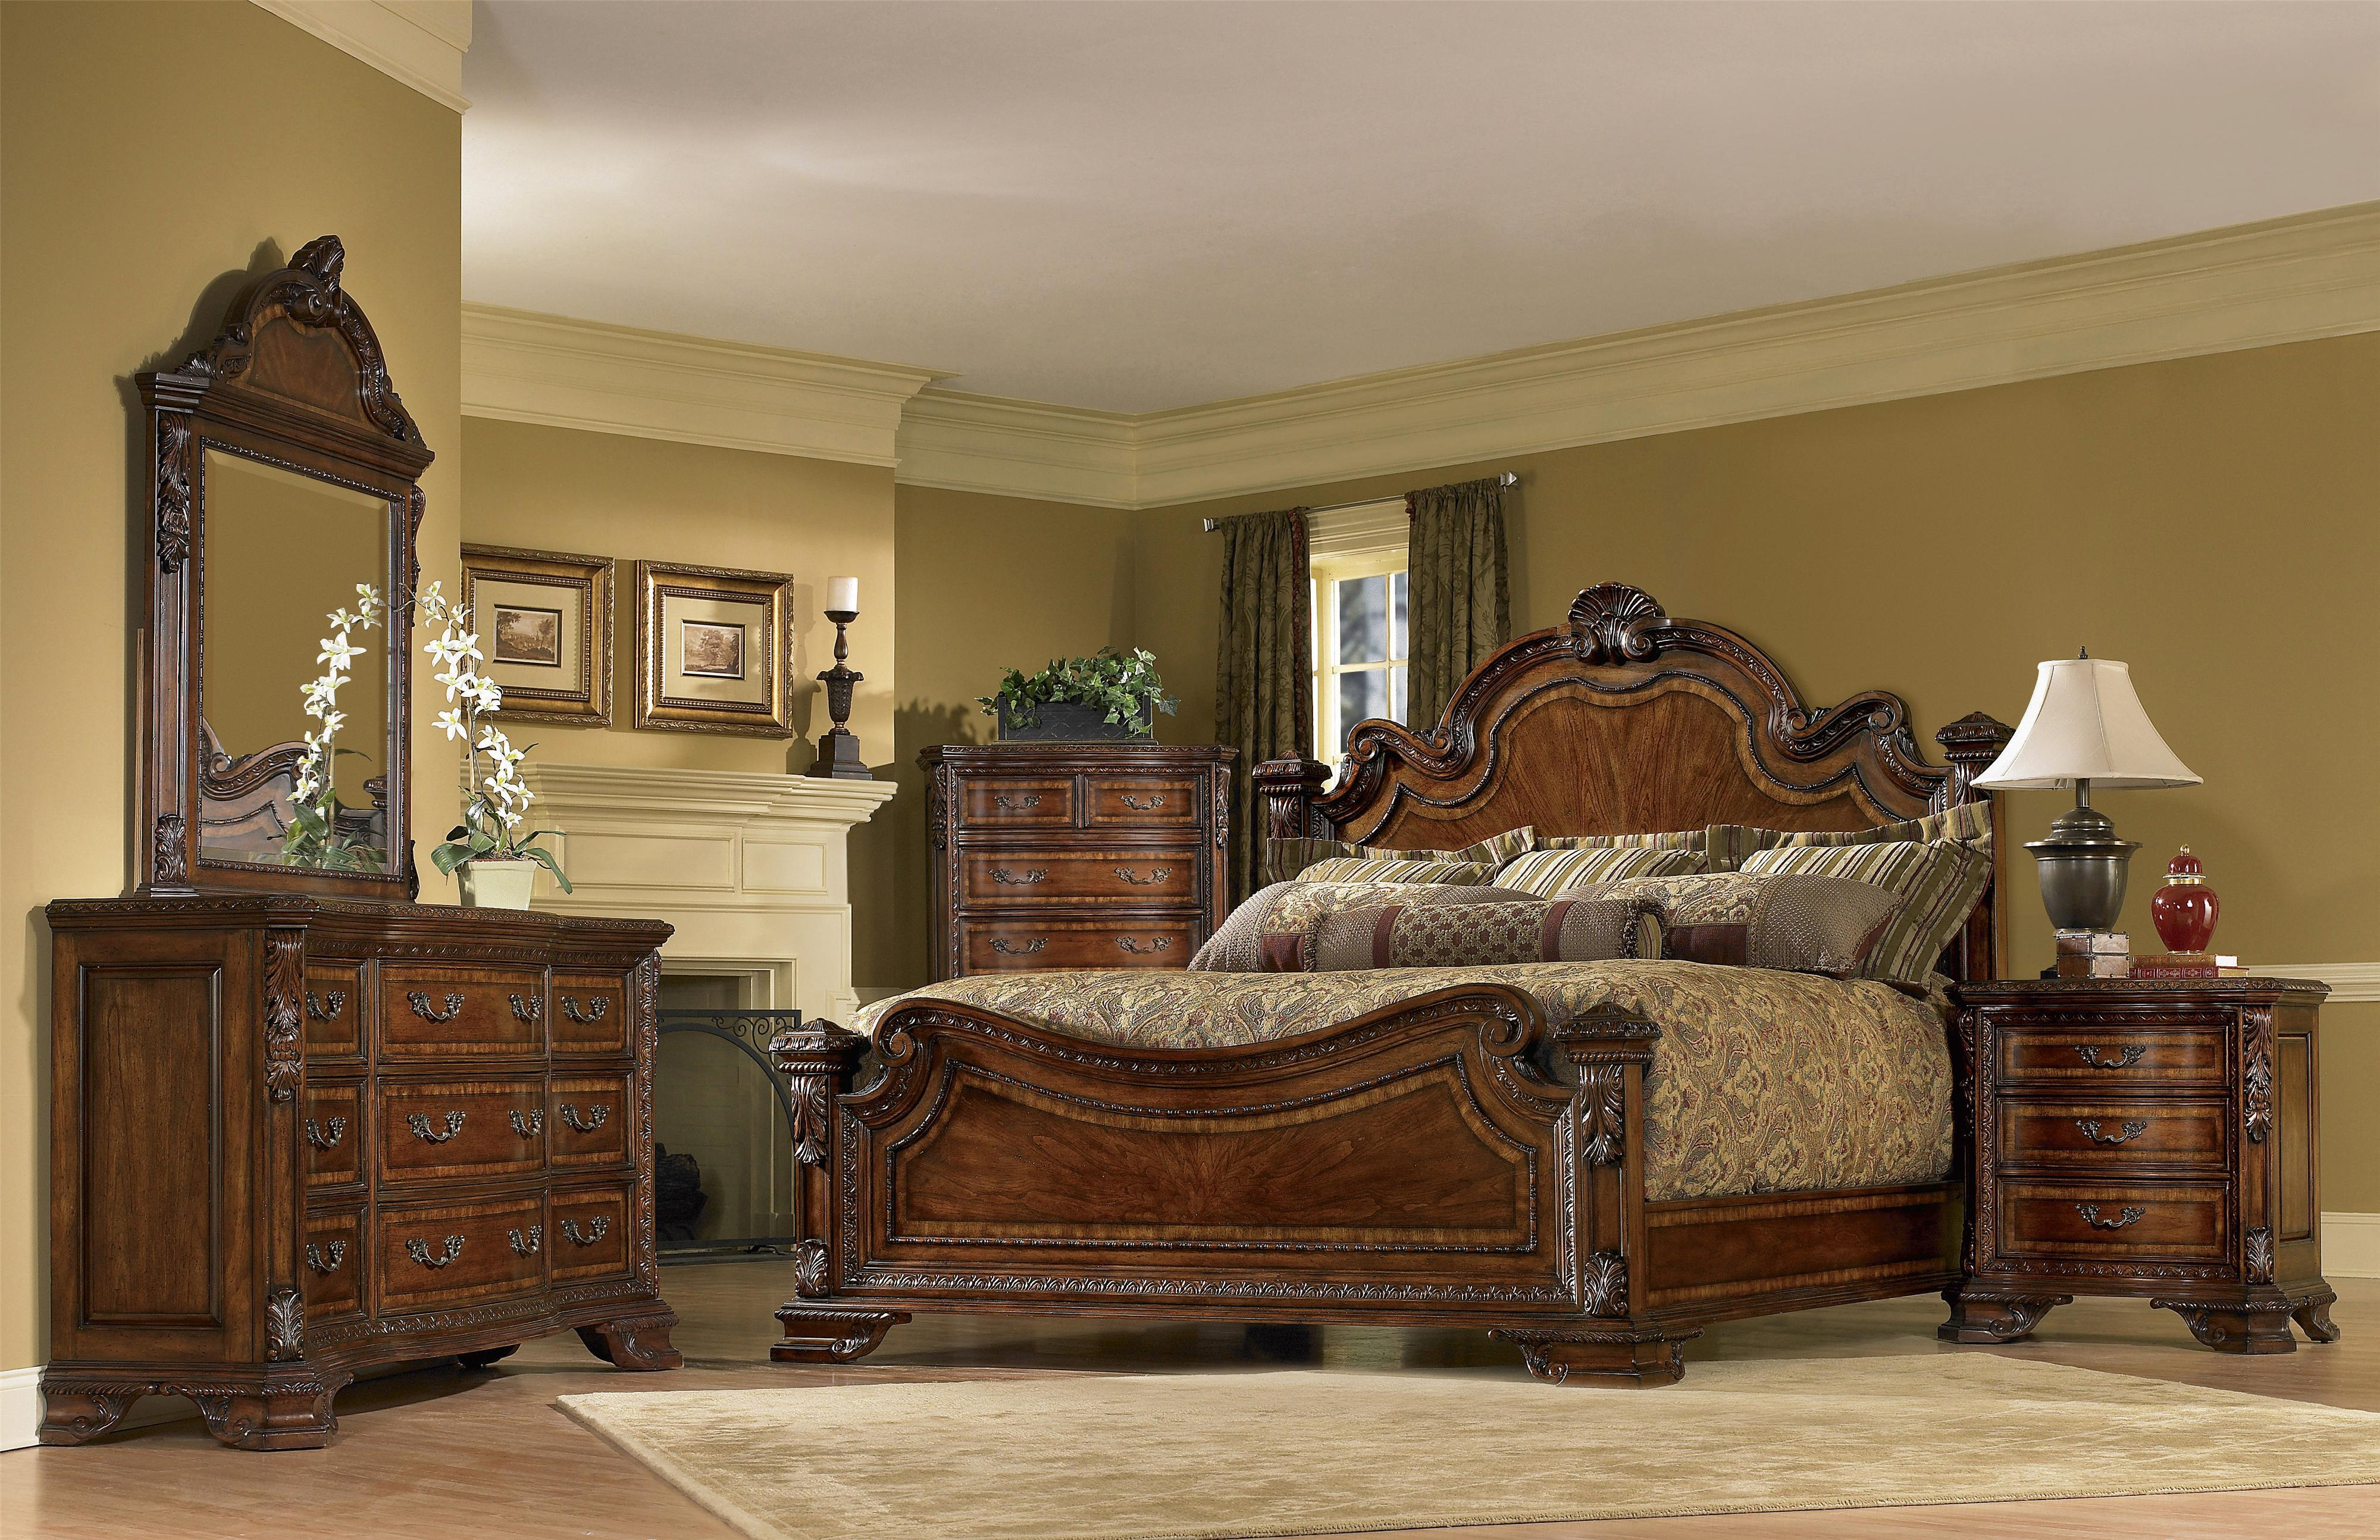 A.R.T. Furniture Inc Old World California King Bedroom Group - Item Number: 43 CK Bedroom Group